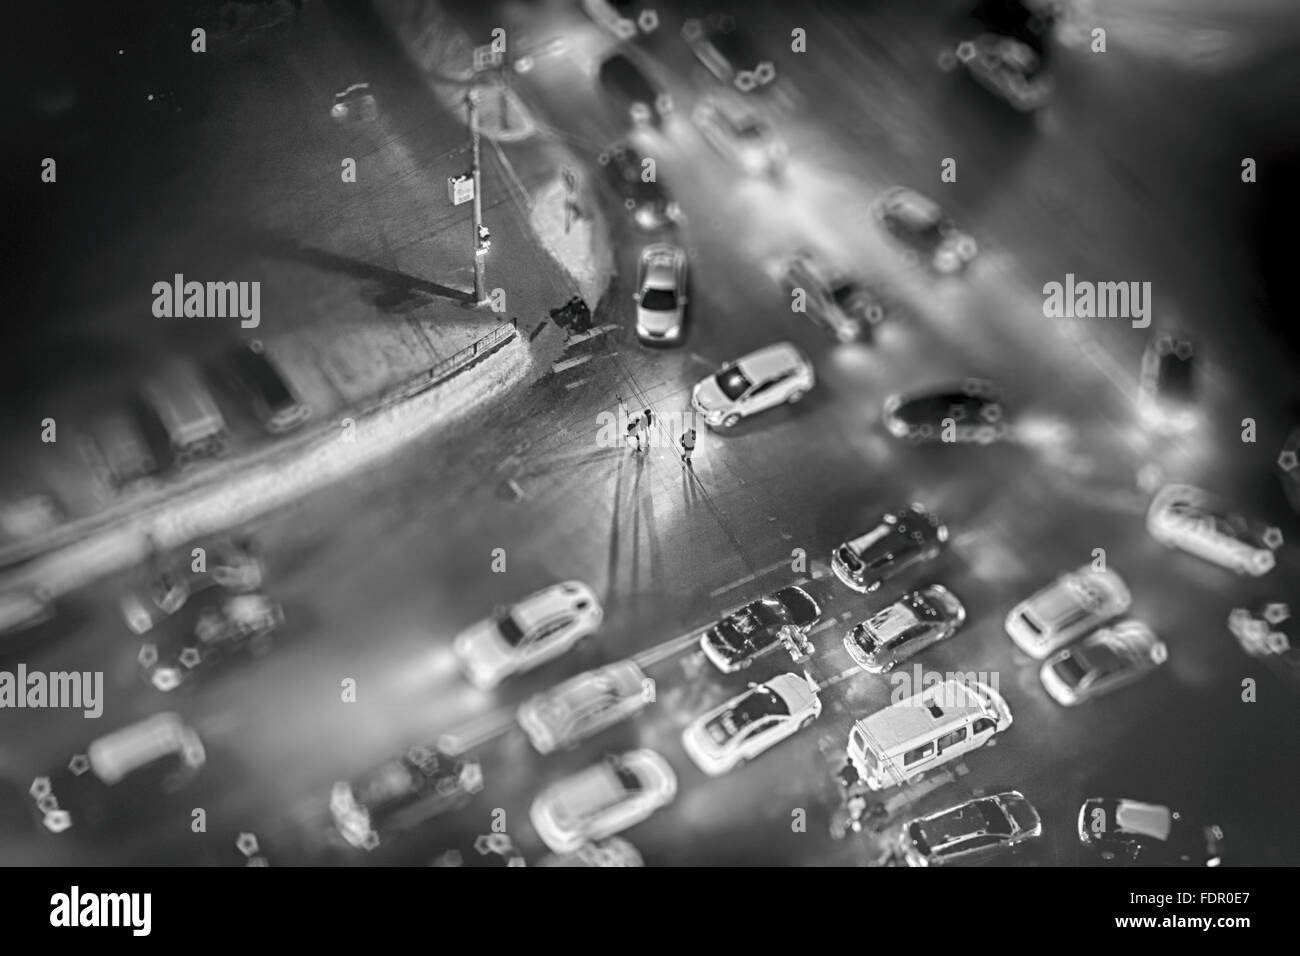 People at night walk across a pedestrian crossing in a busy city traffic jam. The miniature style effect blurs out - Stock Image